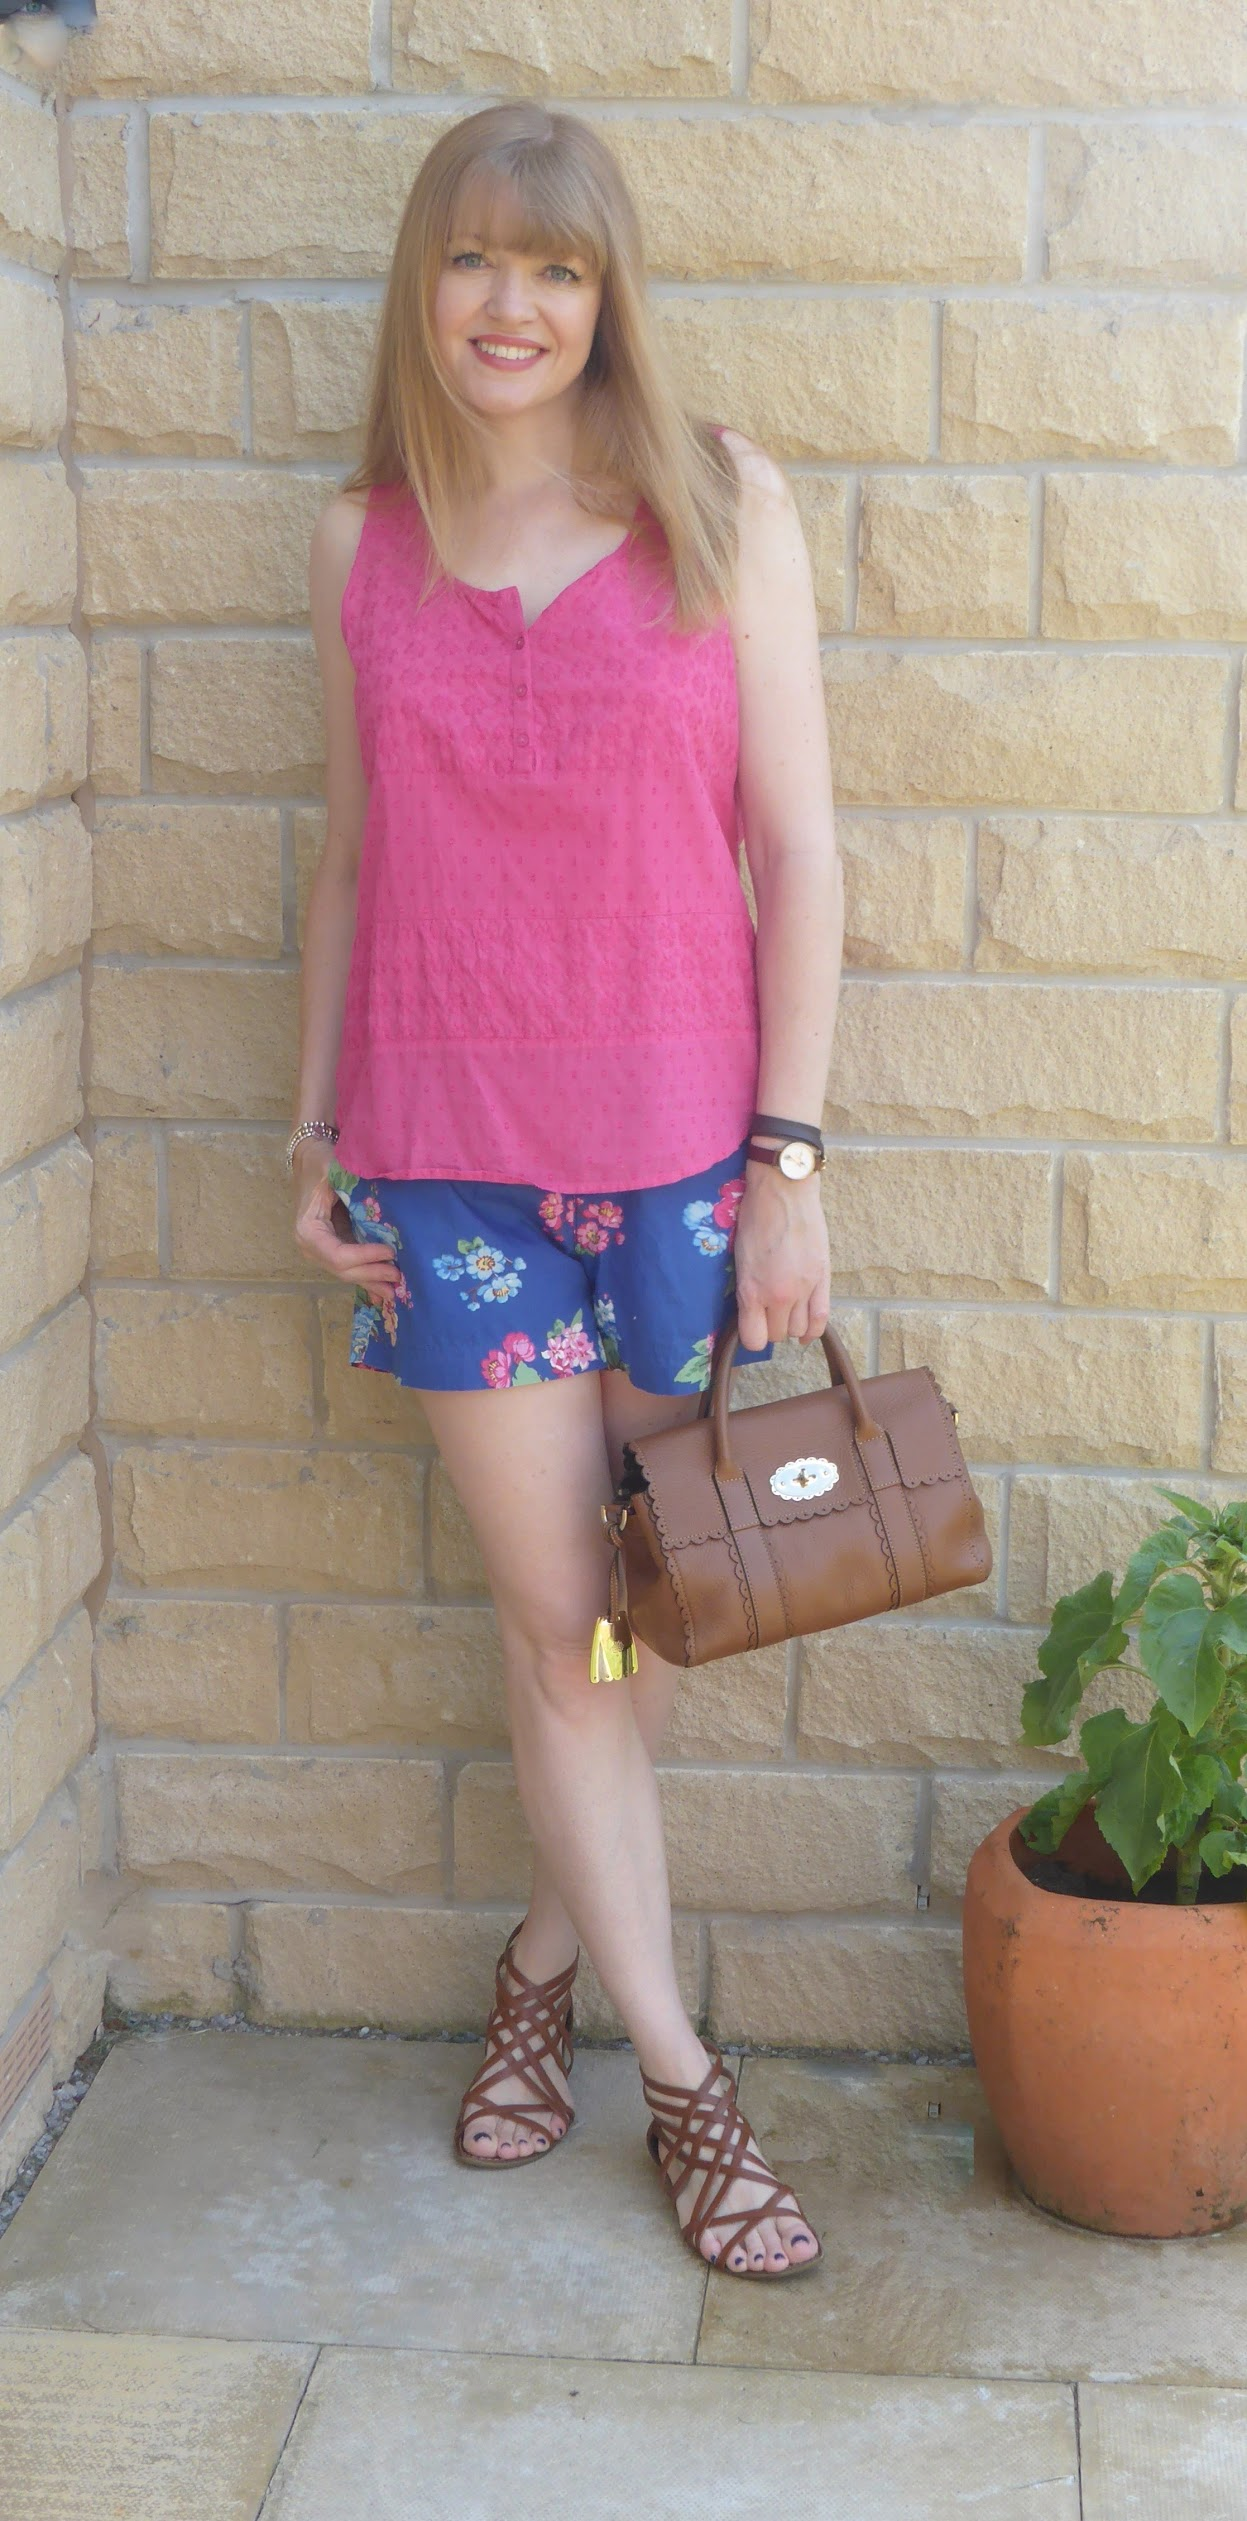 ... cheap mulberry bayswater satchel. over 40 blogger what lizzy loves  wears blue floral joules shirts dbc16137abeb4